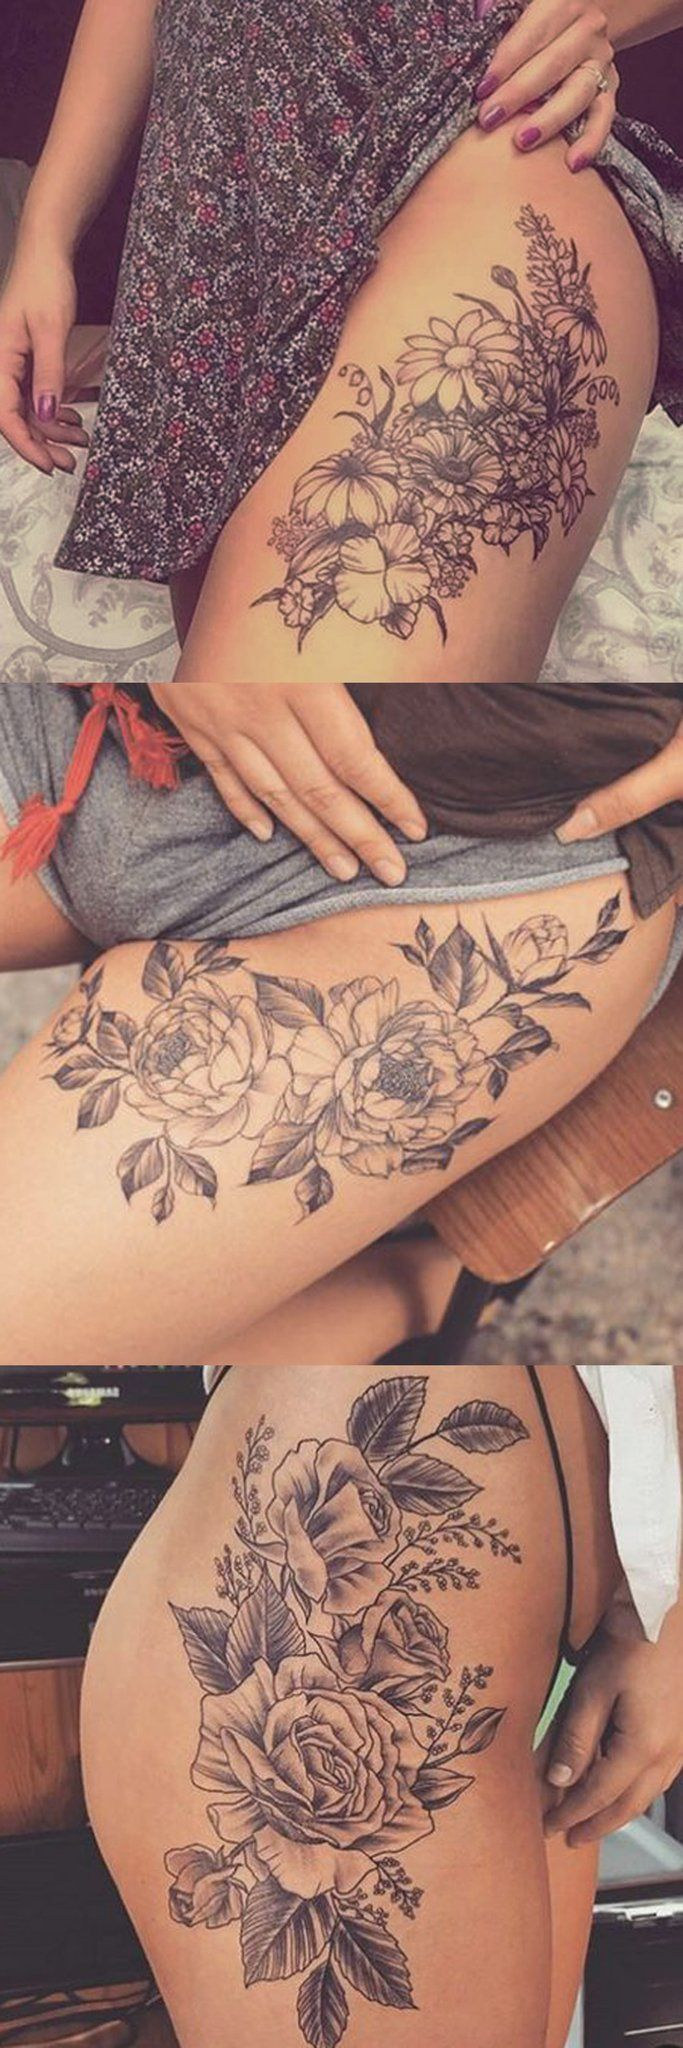 Wild Rose Thigh Tattoo Ideas at – Delicate Floral Flower Leg Tatt for Women